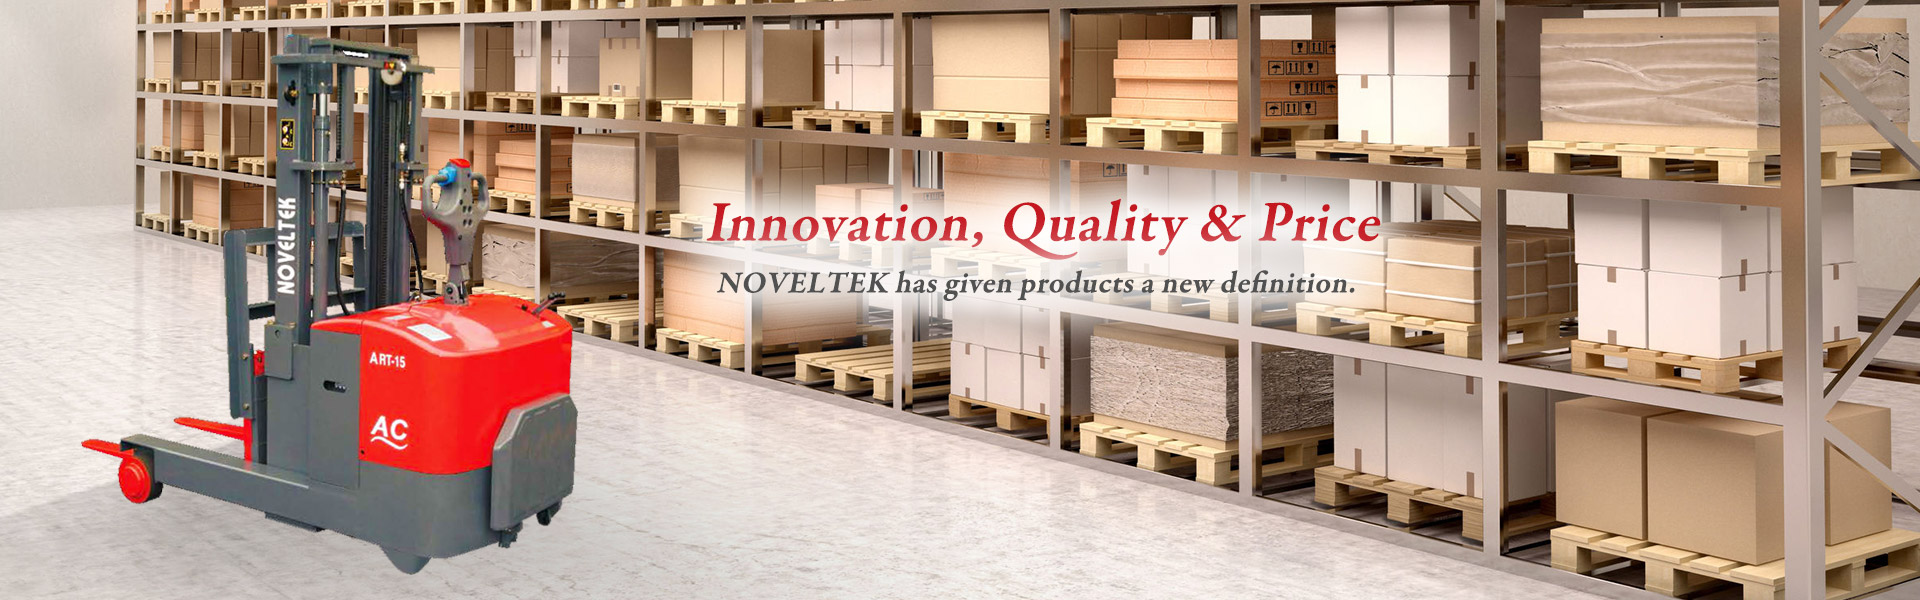 Noveltek Industrial Manufacturing Inc. is a leading Powered Pallet Truck and Electric Forklift firm specialized in Order Picker Truck, Counter Balanced Reach Truck, Powered Pallet Truck, Pallet Truck, Electric Forklift, Pallet Jet, Pallet Stacker, Walkie Stacker, Powered Stacker, Lift Table, Electric Forklift Manufacturer, and Pallet Truck Manufacturer .